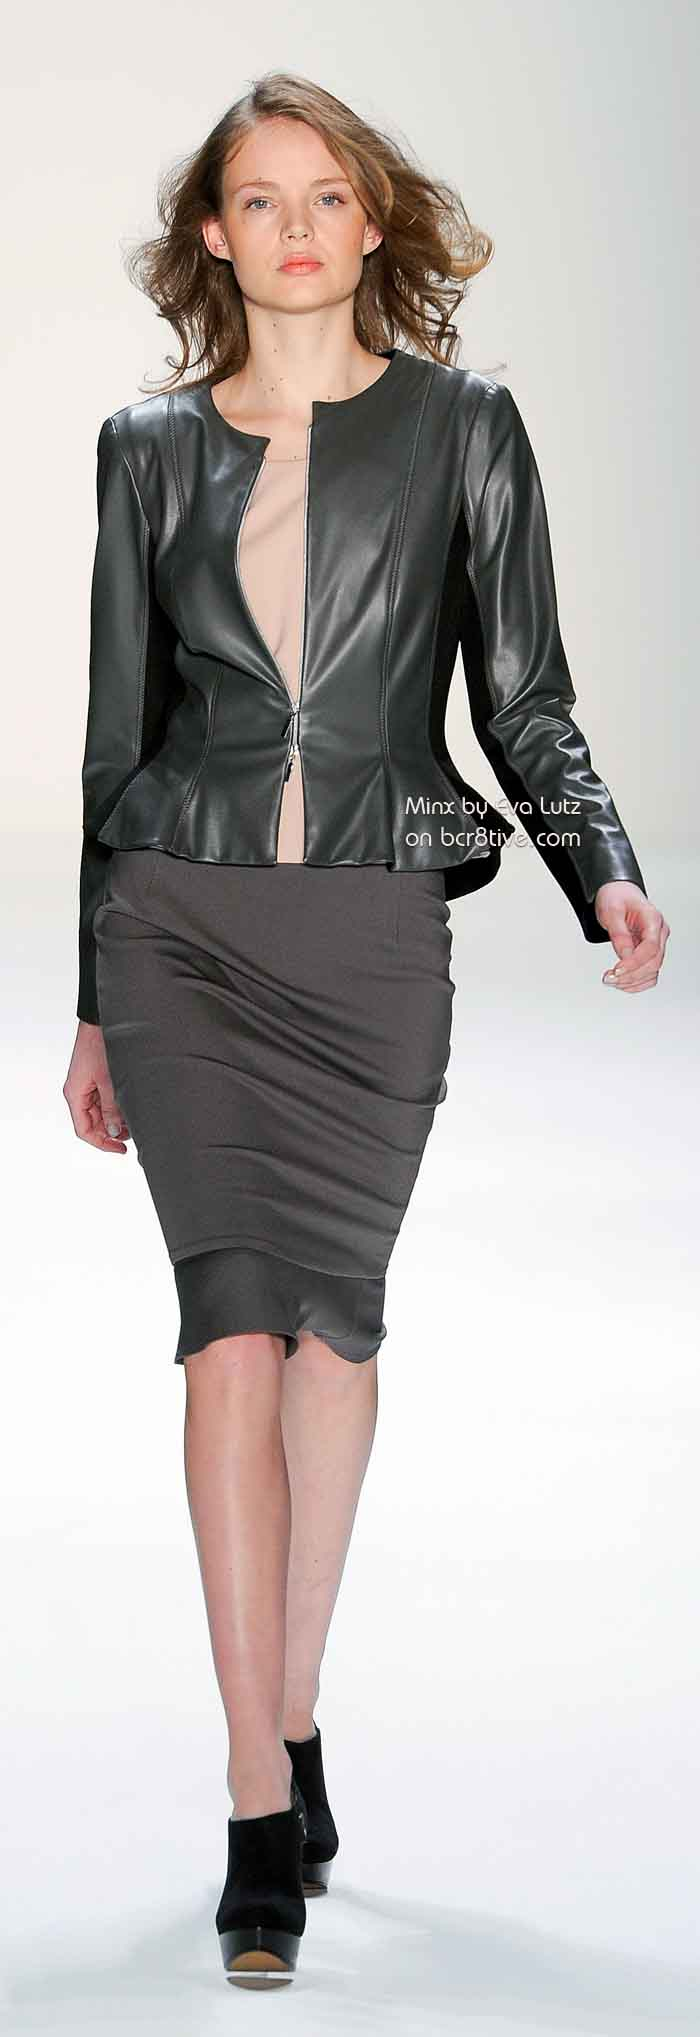 Minx by Eva Lutz Fall Winter 2013-14 Berlin Fashion Week